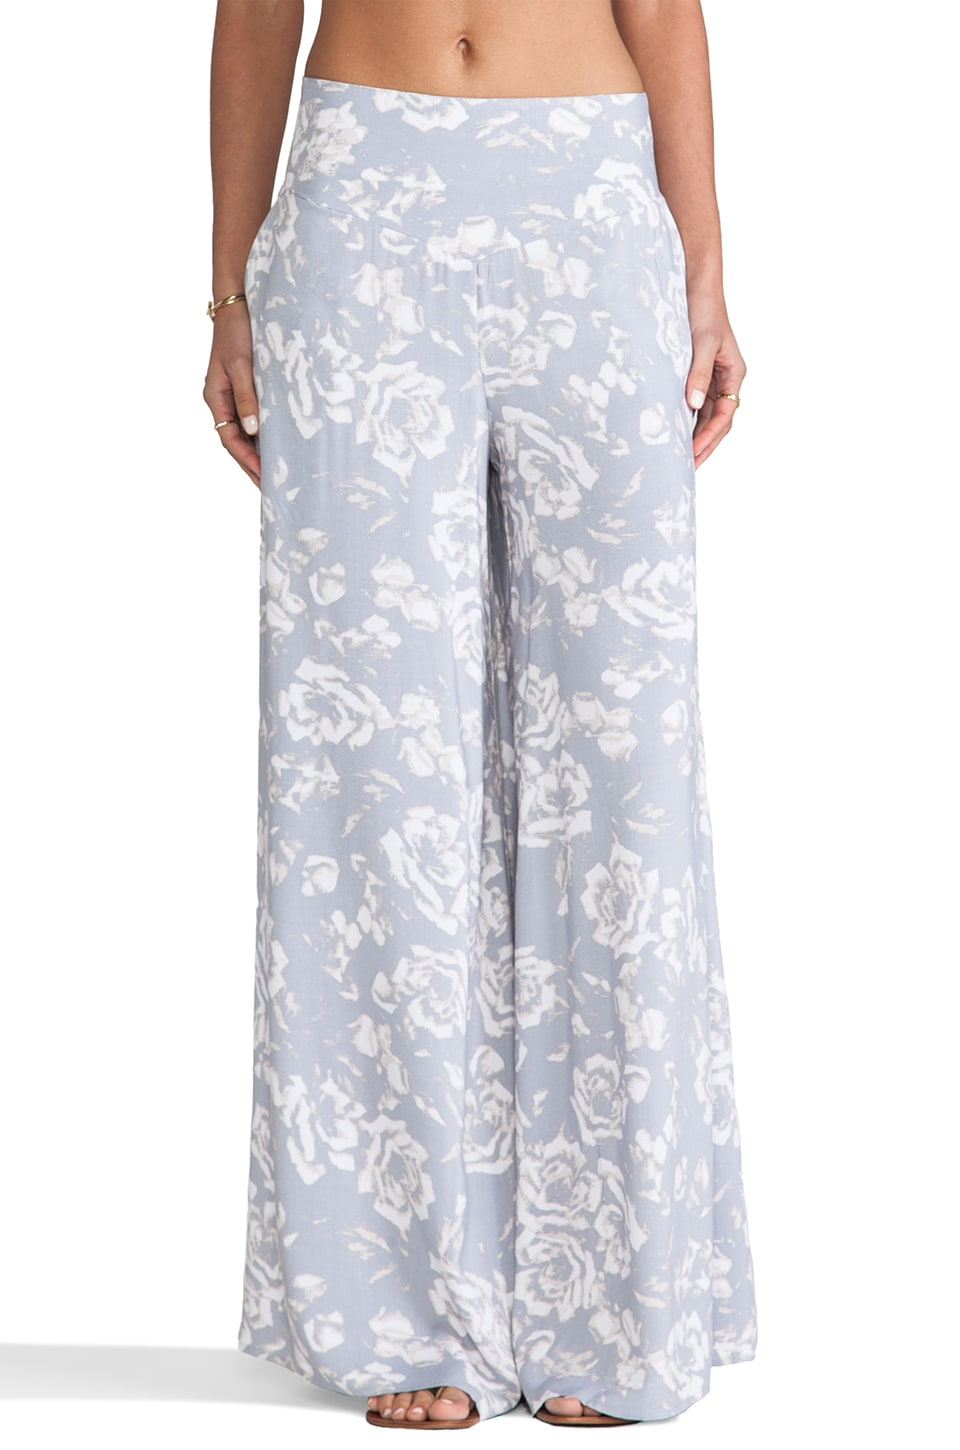 BB Dakota Alonda Rose Printed Pants in Storm Grey